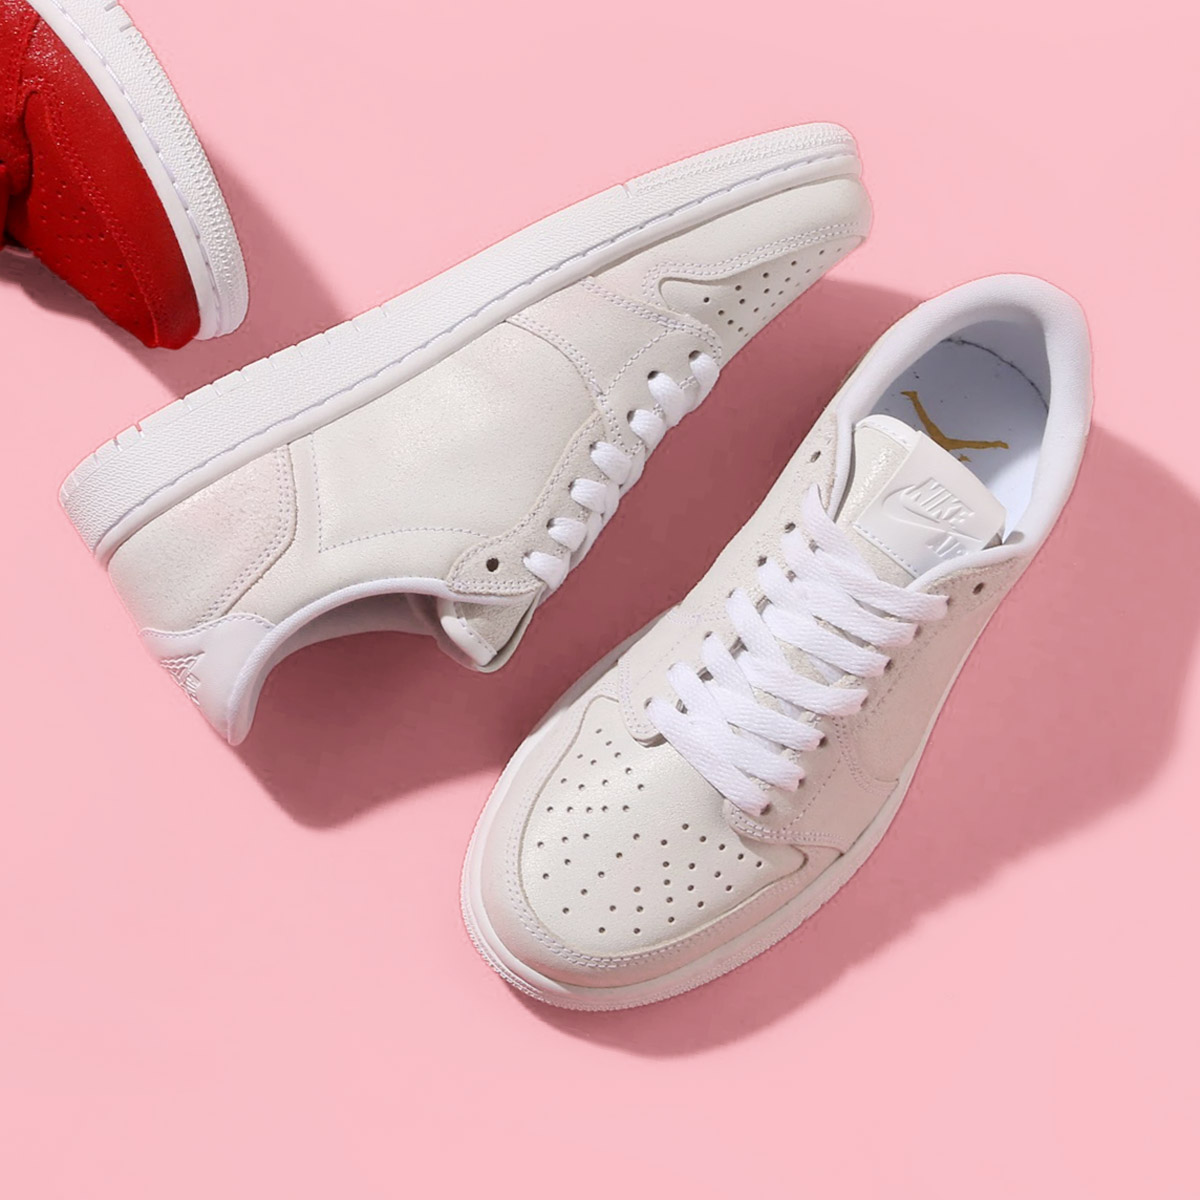 c8e4d0fe198e NIKE WMNS AIR JORDAN 1 RETRO LOW NS (Nike women Air Jordan 1 nostalgic low  NS) WHITE METALLIC GOLD-WHITE 18SP-S